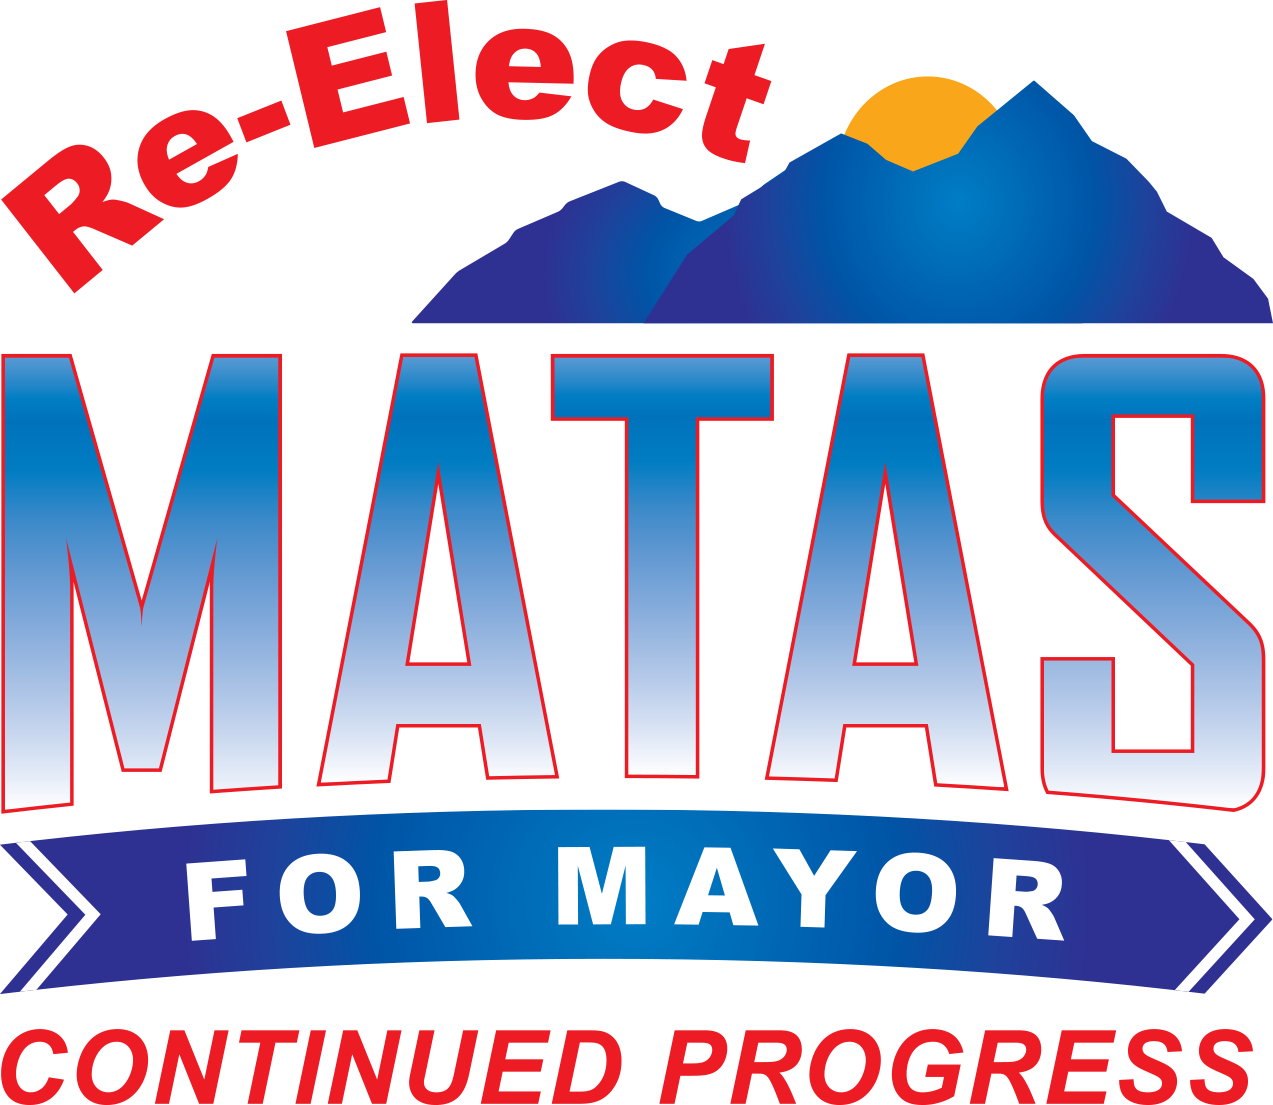 Re-Elect Matas for Mayor